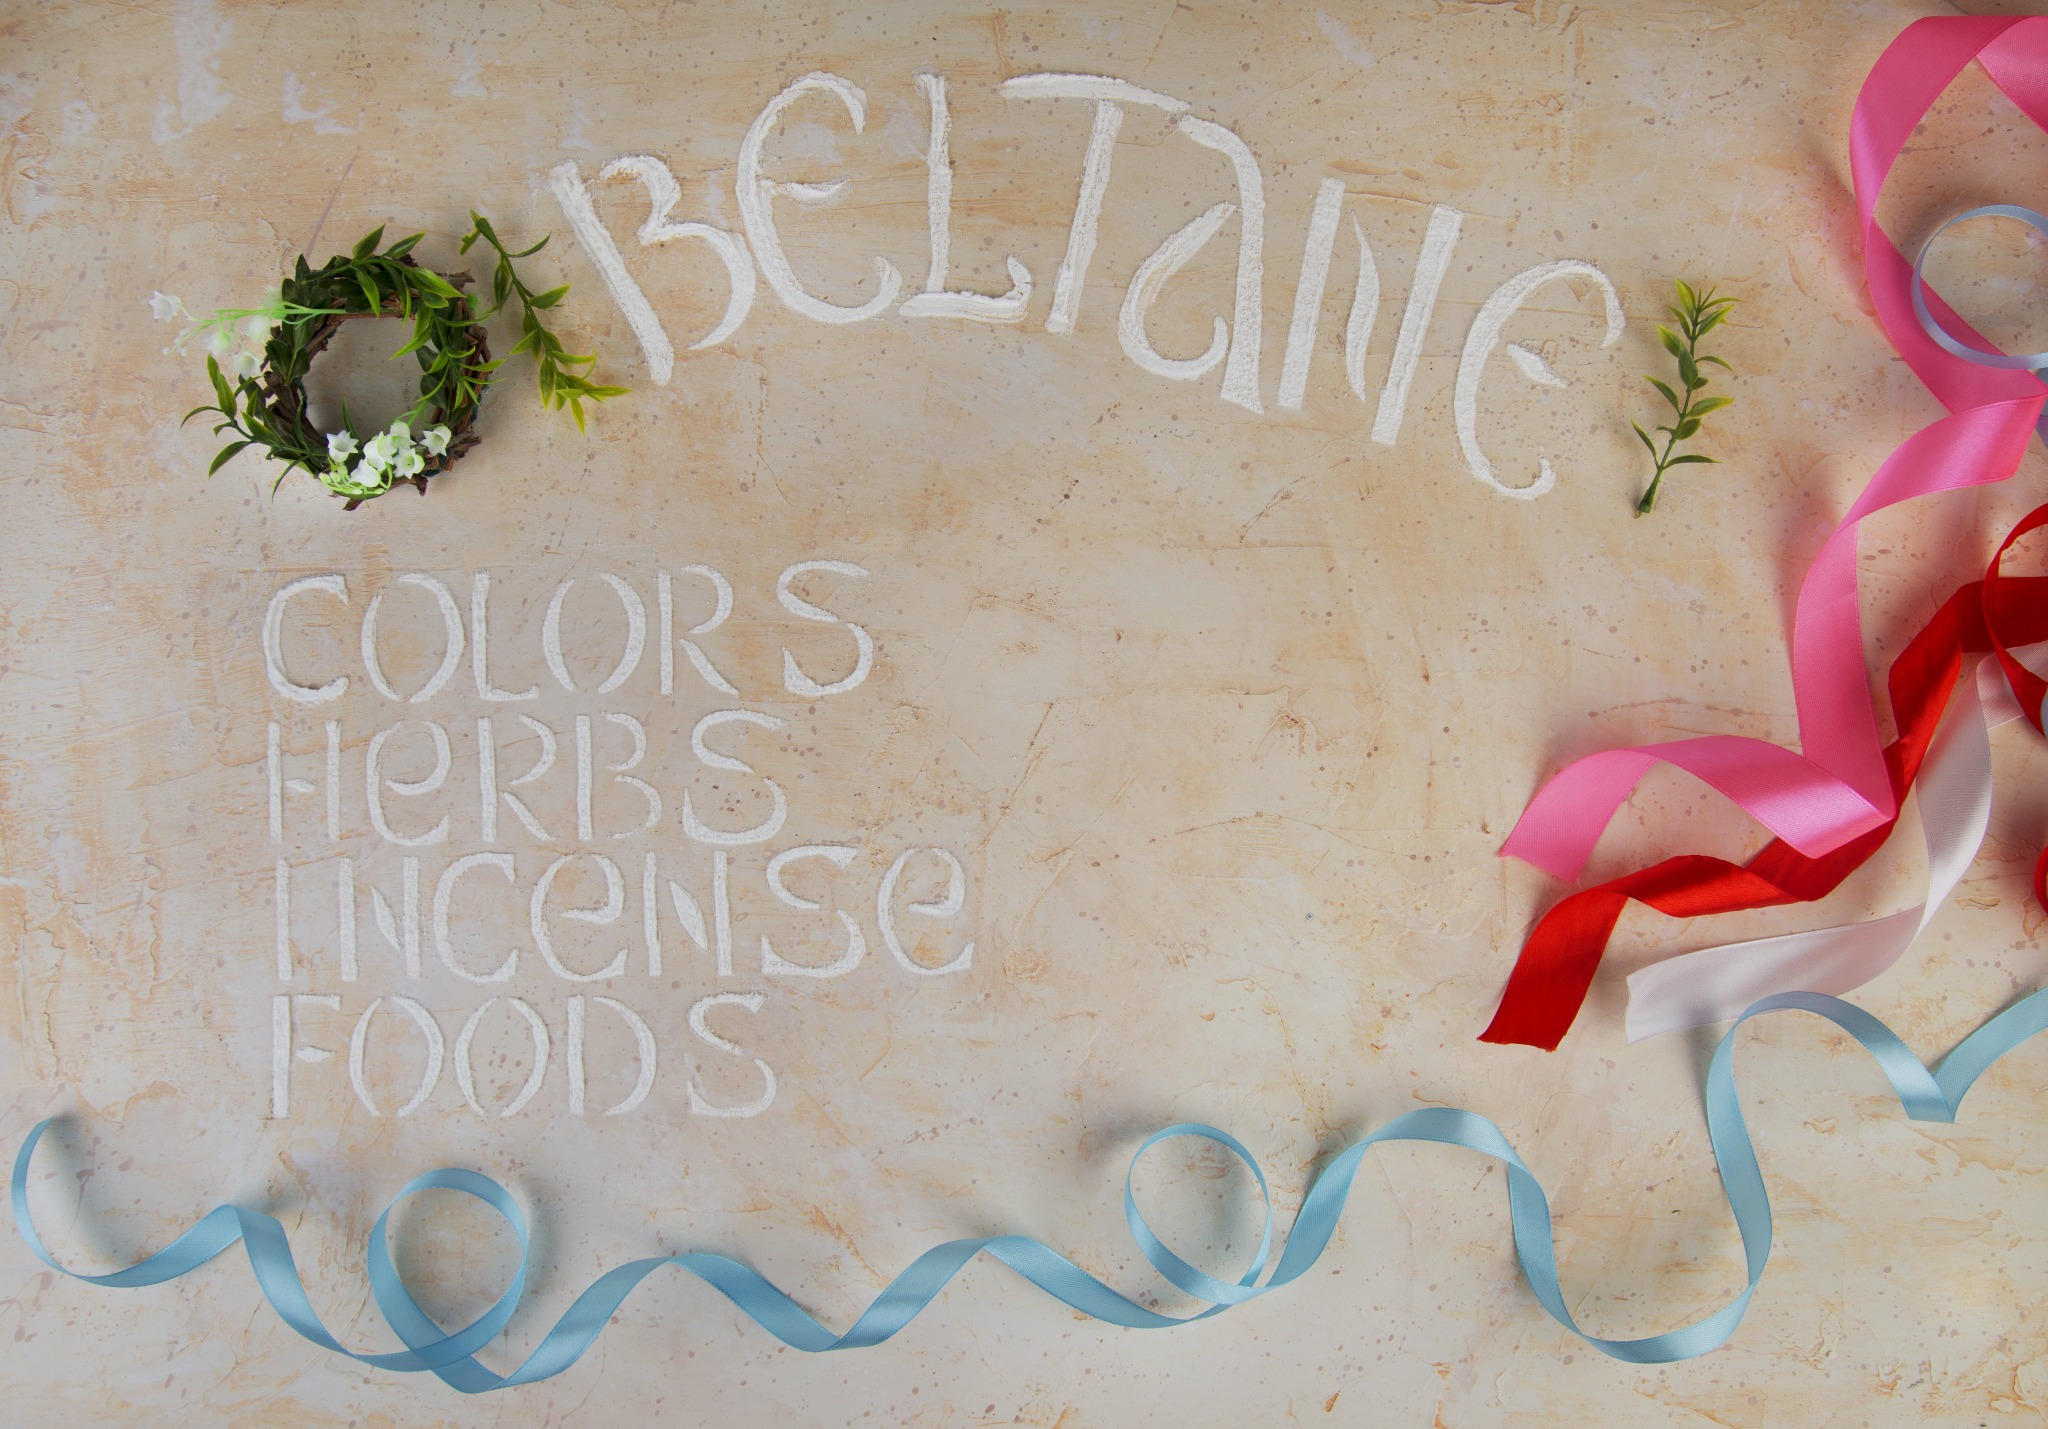 Beltane written out with herbs, colors, and ribbons.